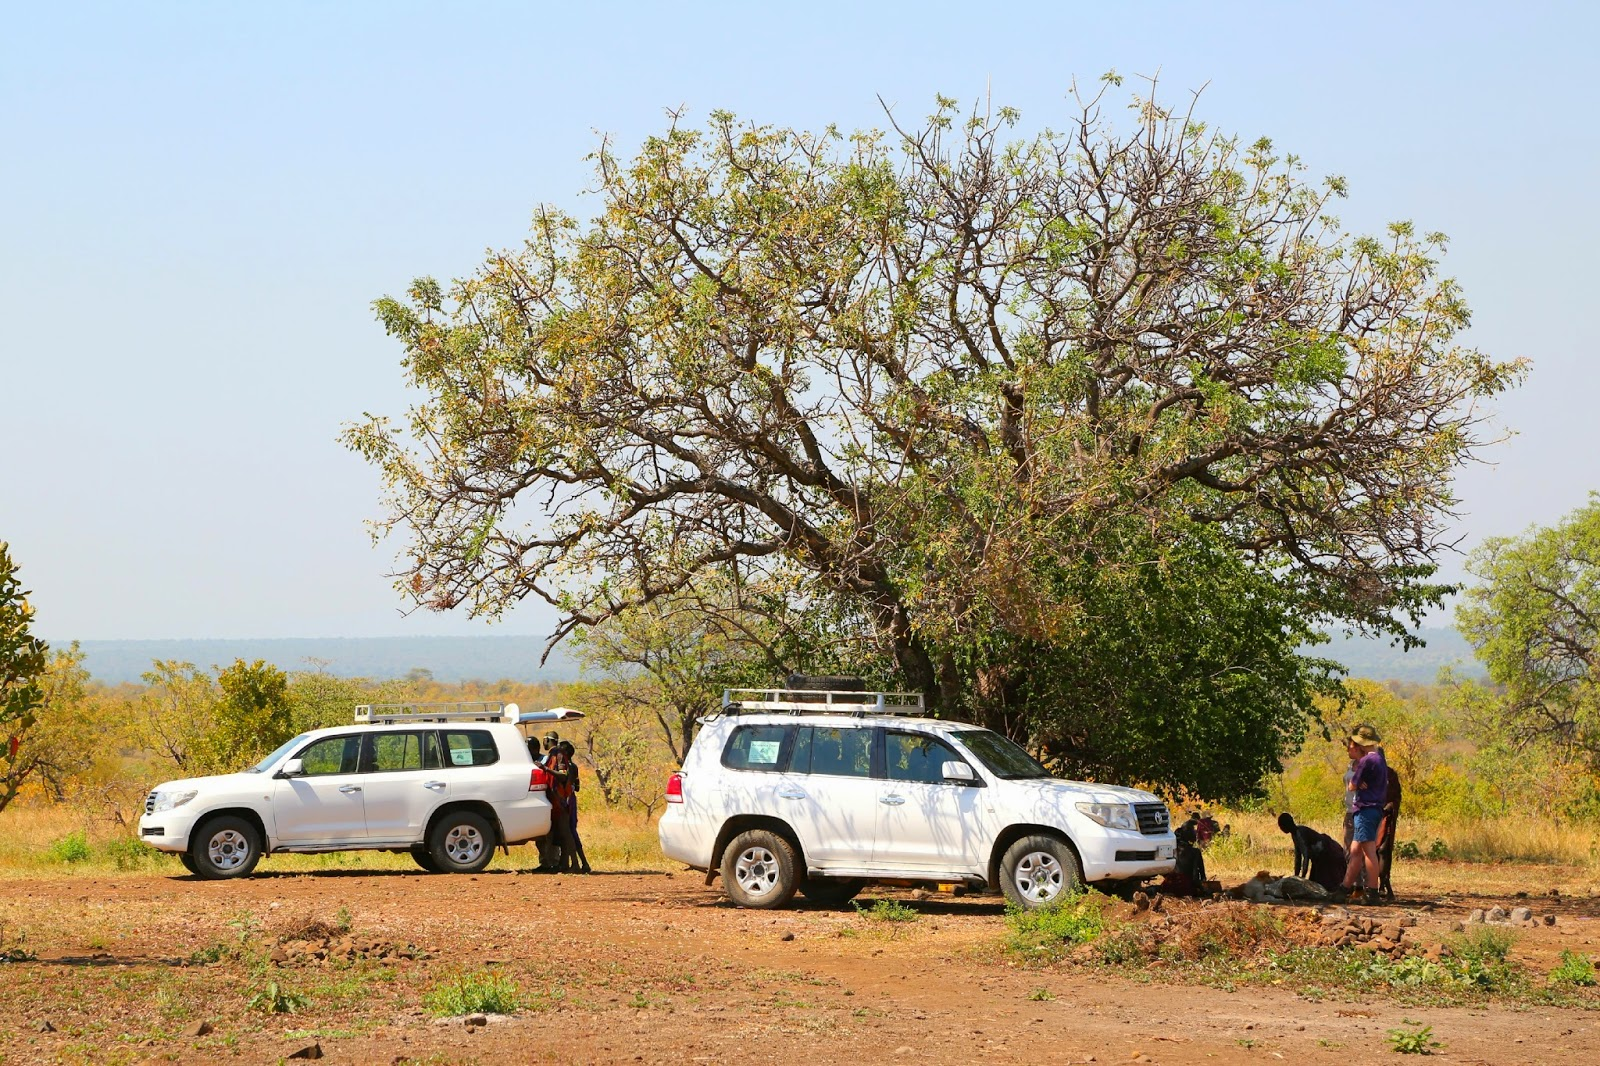 Our 4WD's at the Mursi village